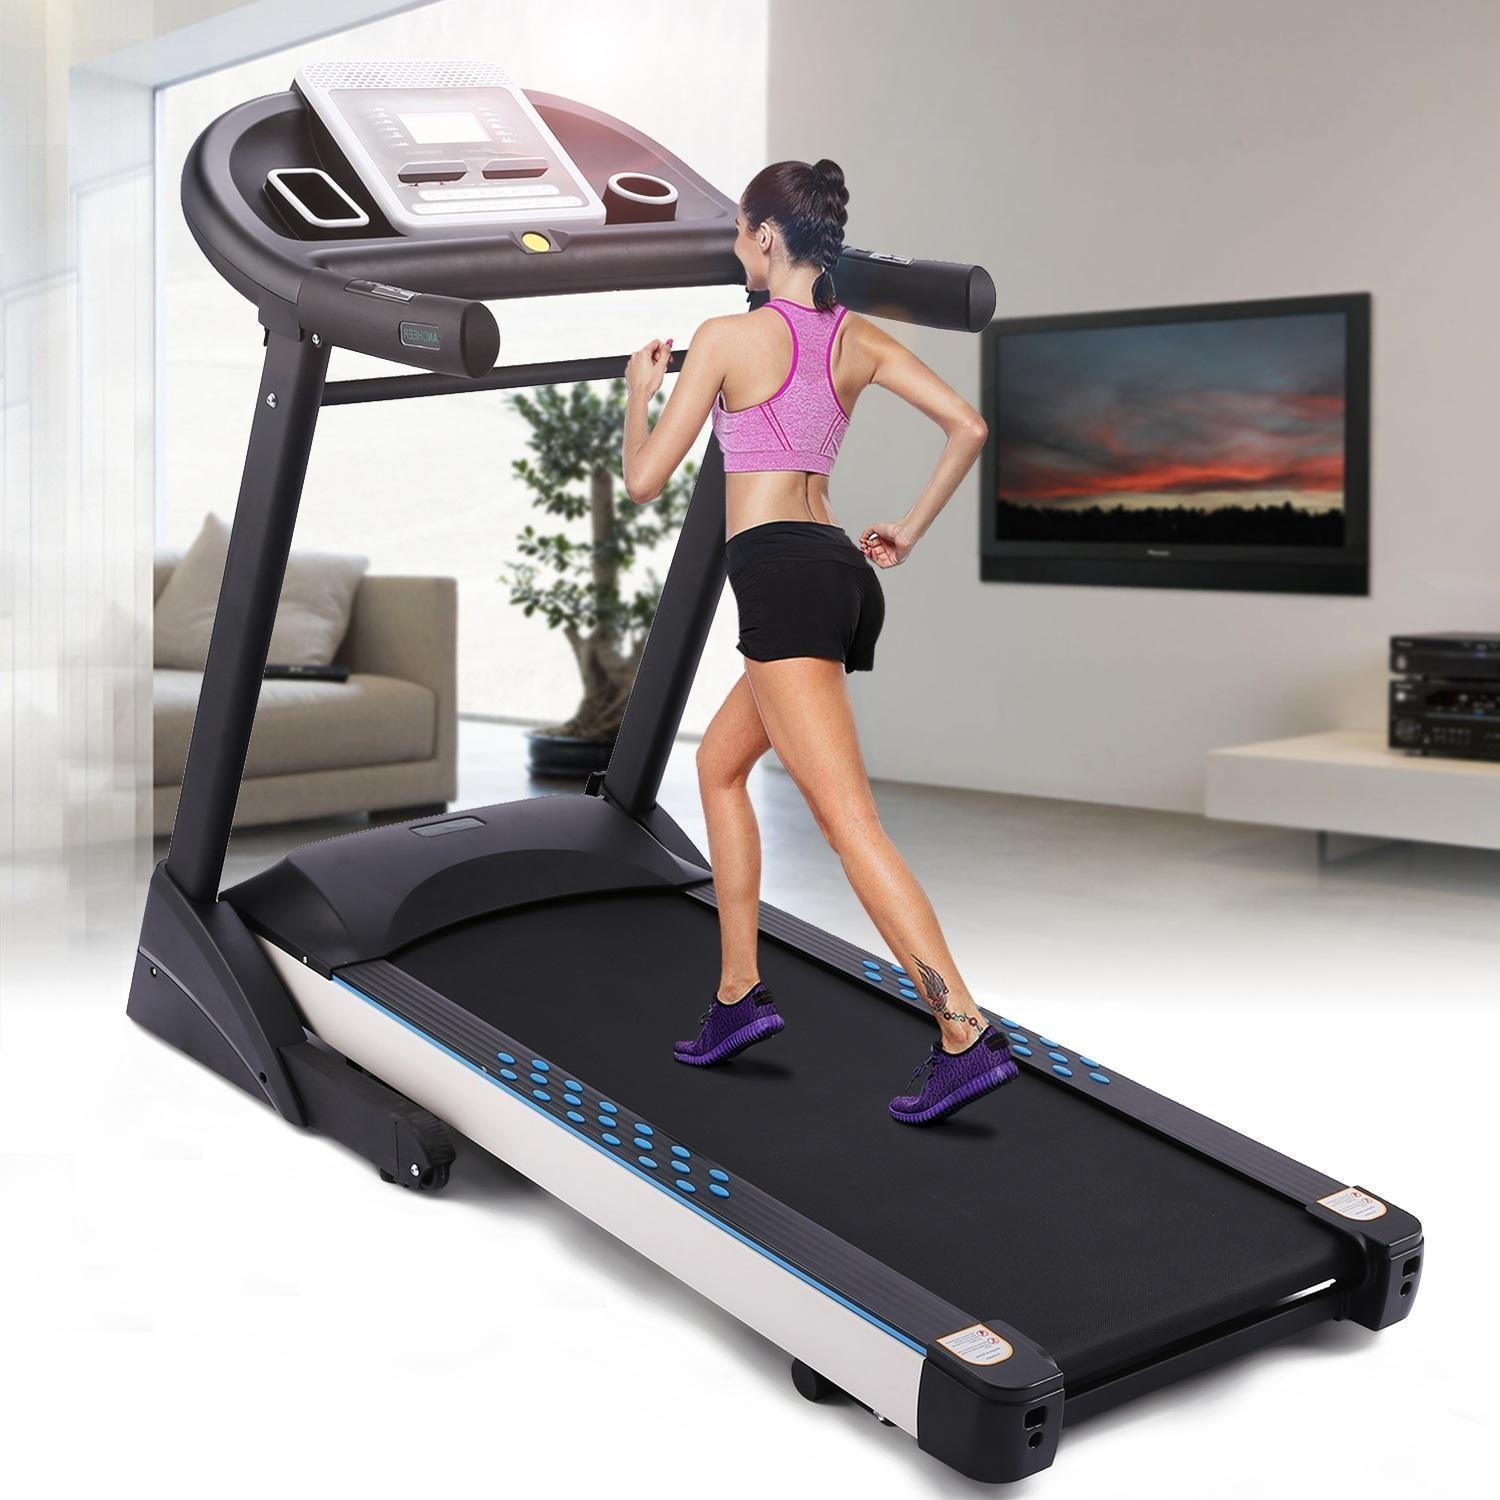 Clearance! Ancheer 3.0HP Treadmill Fitness Folding Electric Treadmill With Mobile Phone Holder and 5inch HD... by